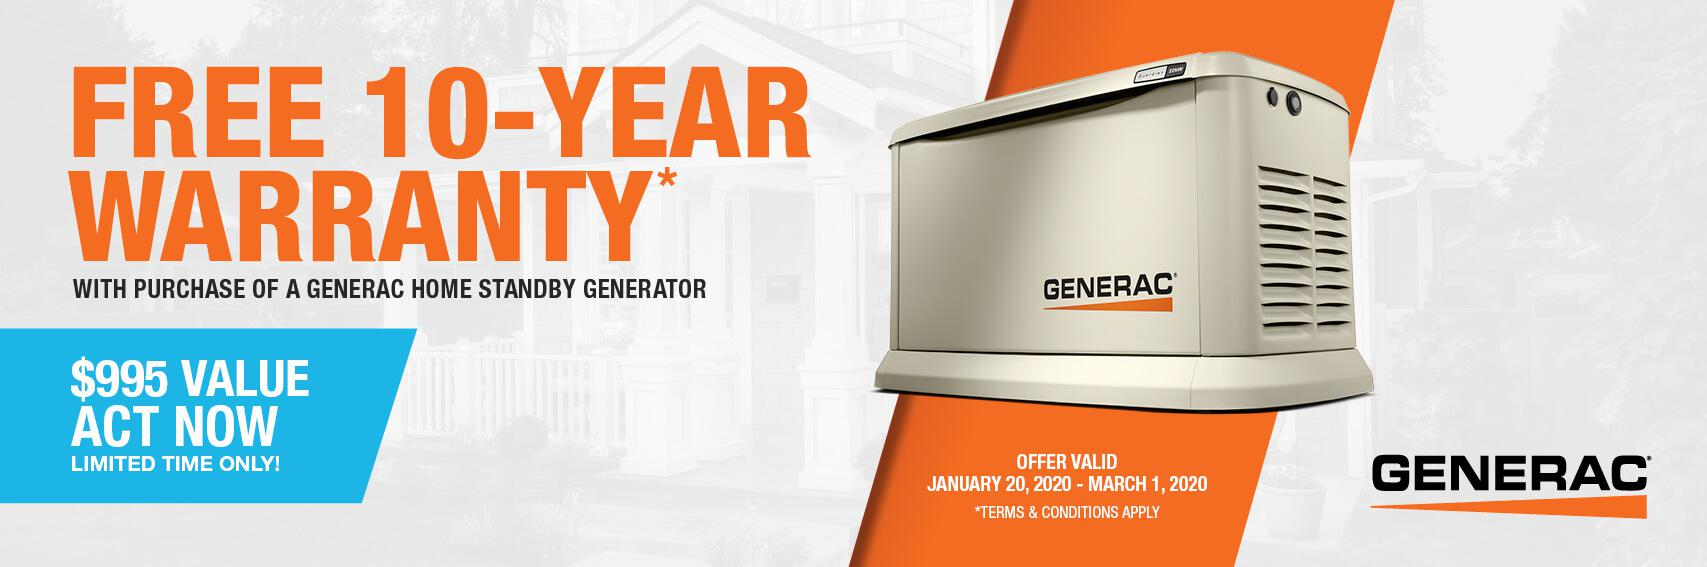 Homestandby Generator Deal | Warranty Offer | Generac Dealer | Woodbine, NJ